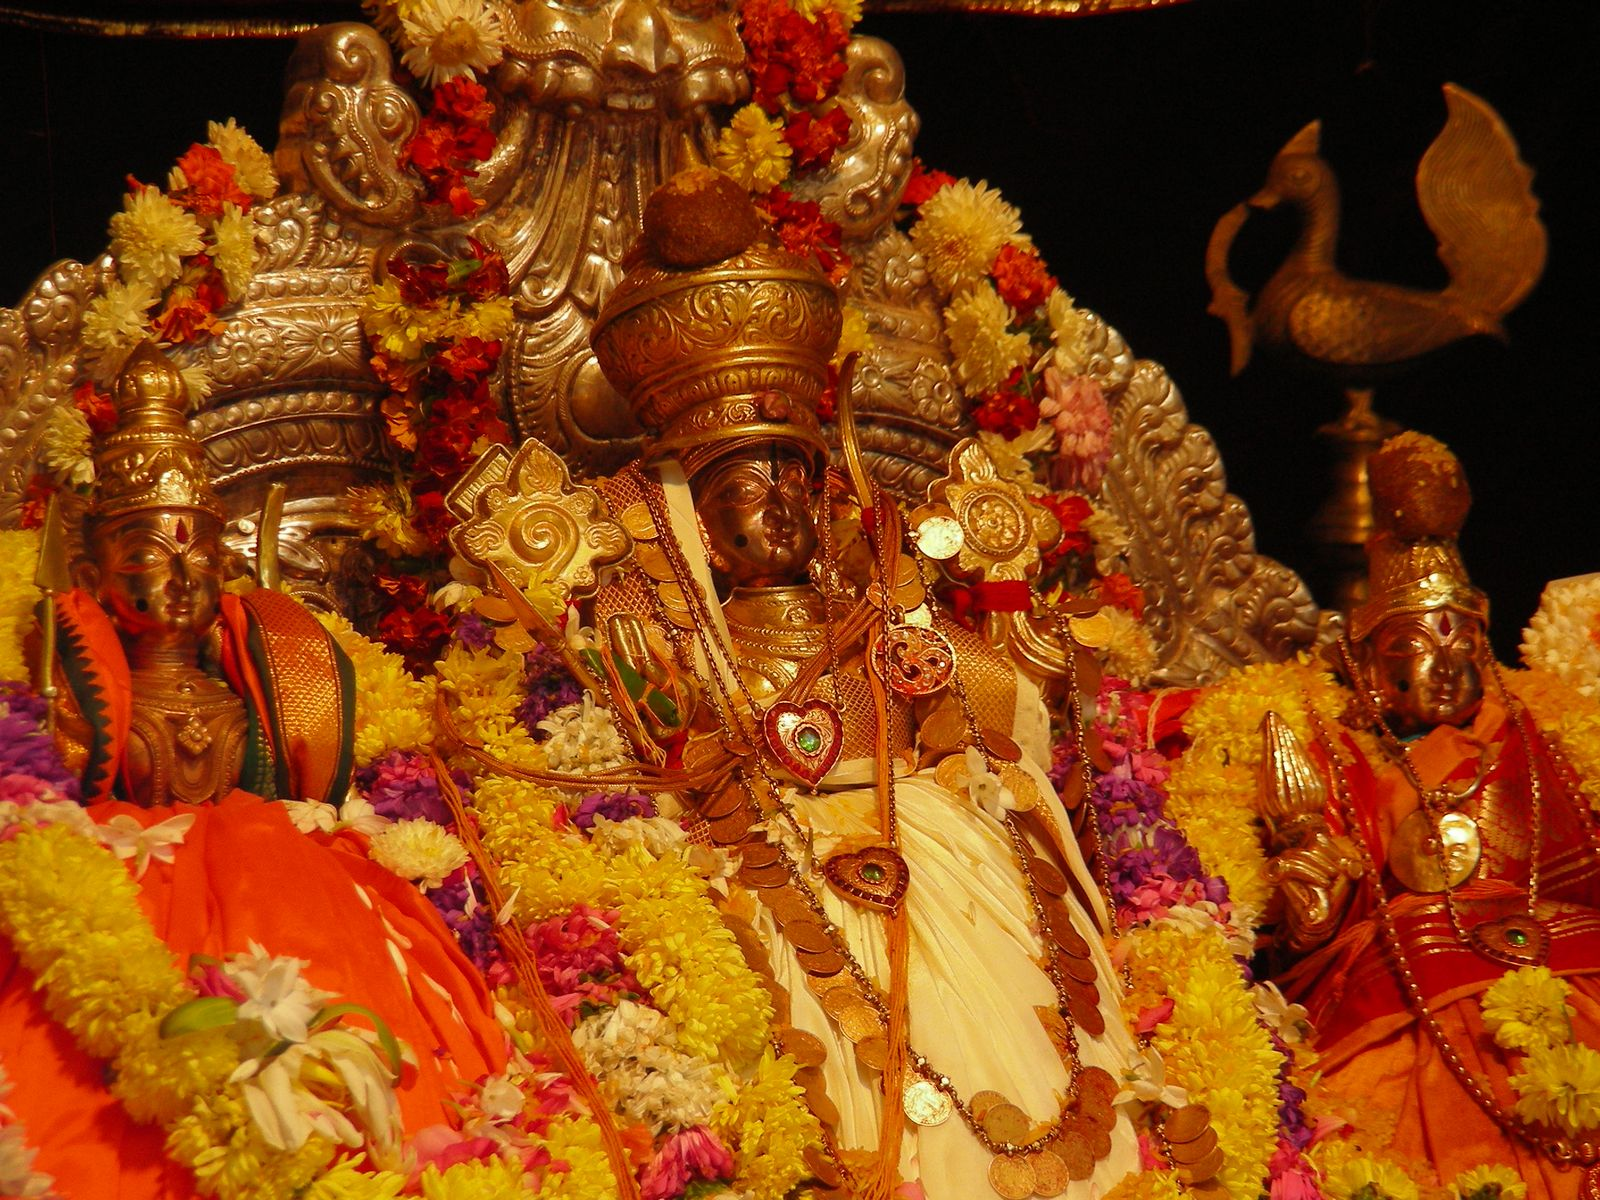 Venkateswara Swami Photos 4k For Pc: Rare Photos Of Balaji (from Lord Sri Venkateswara Temple